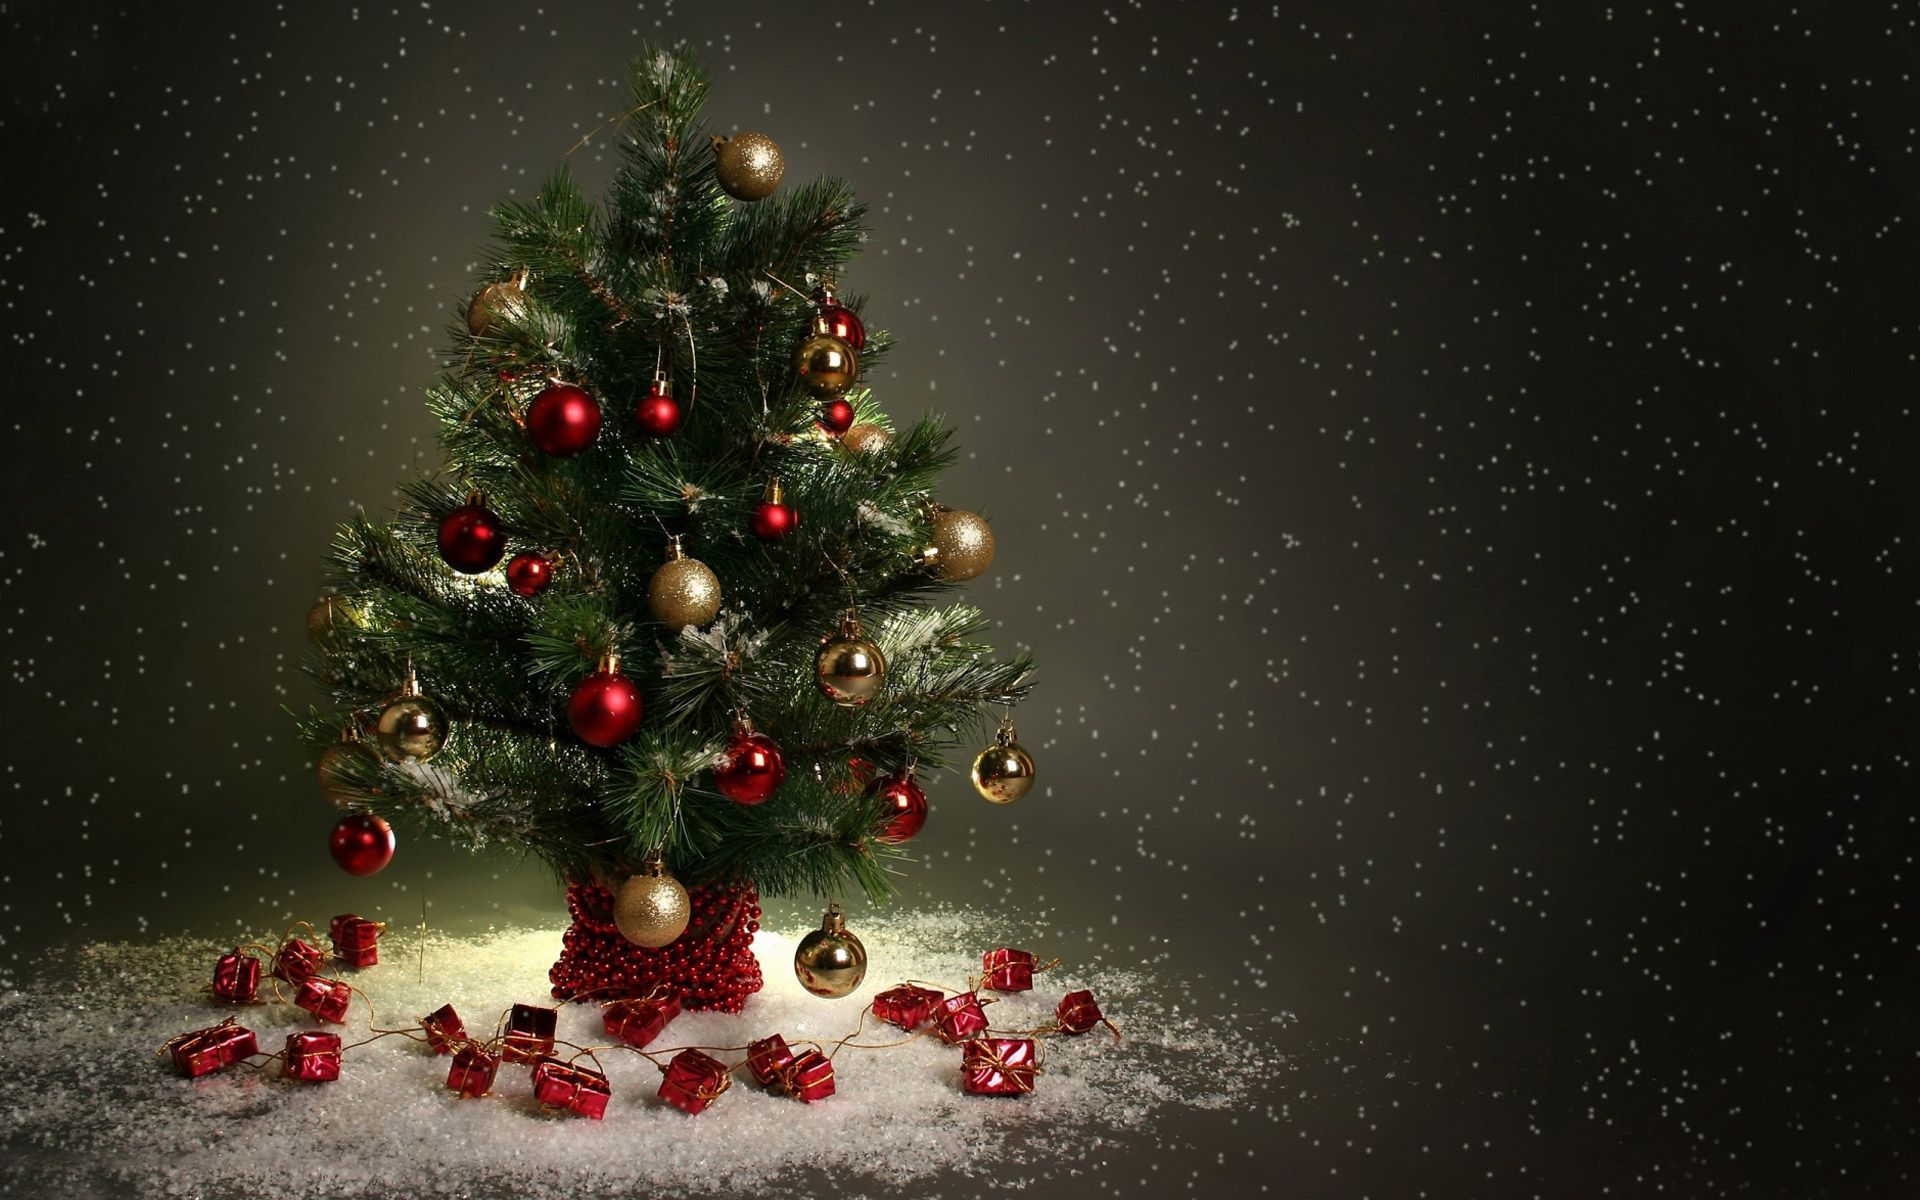 Beautiful Christmas Tree Hd Wallpapers Free Download Tree Pictures Full Hd Christmas Tree Images Free Christmas Wallpaper Downloads Merry Christmas Wallpaper